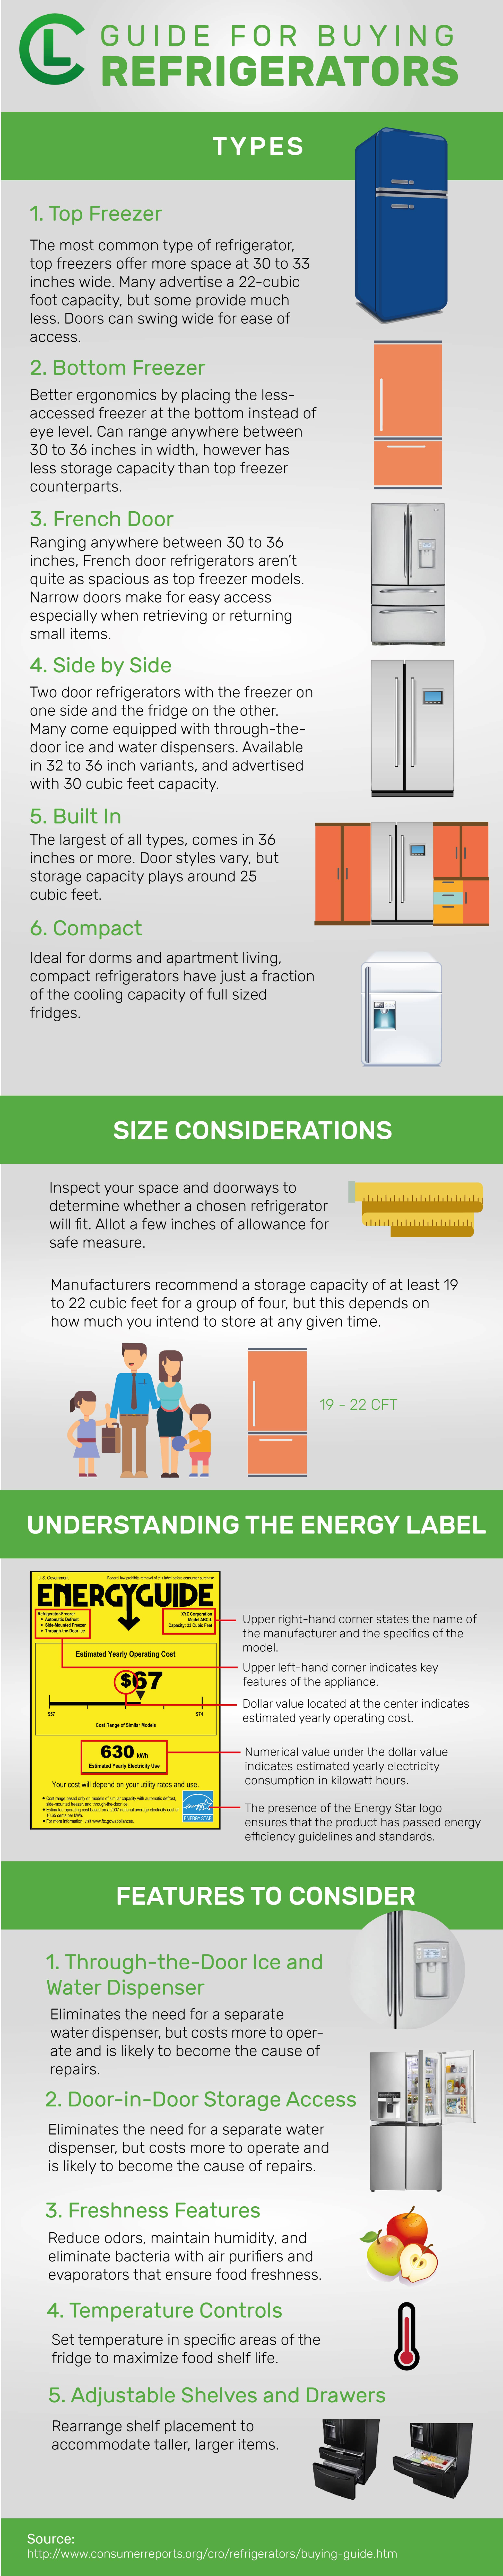 Guide For Buying Refrigerators Infographic